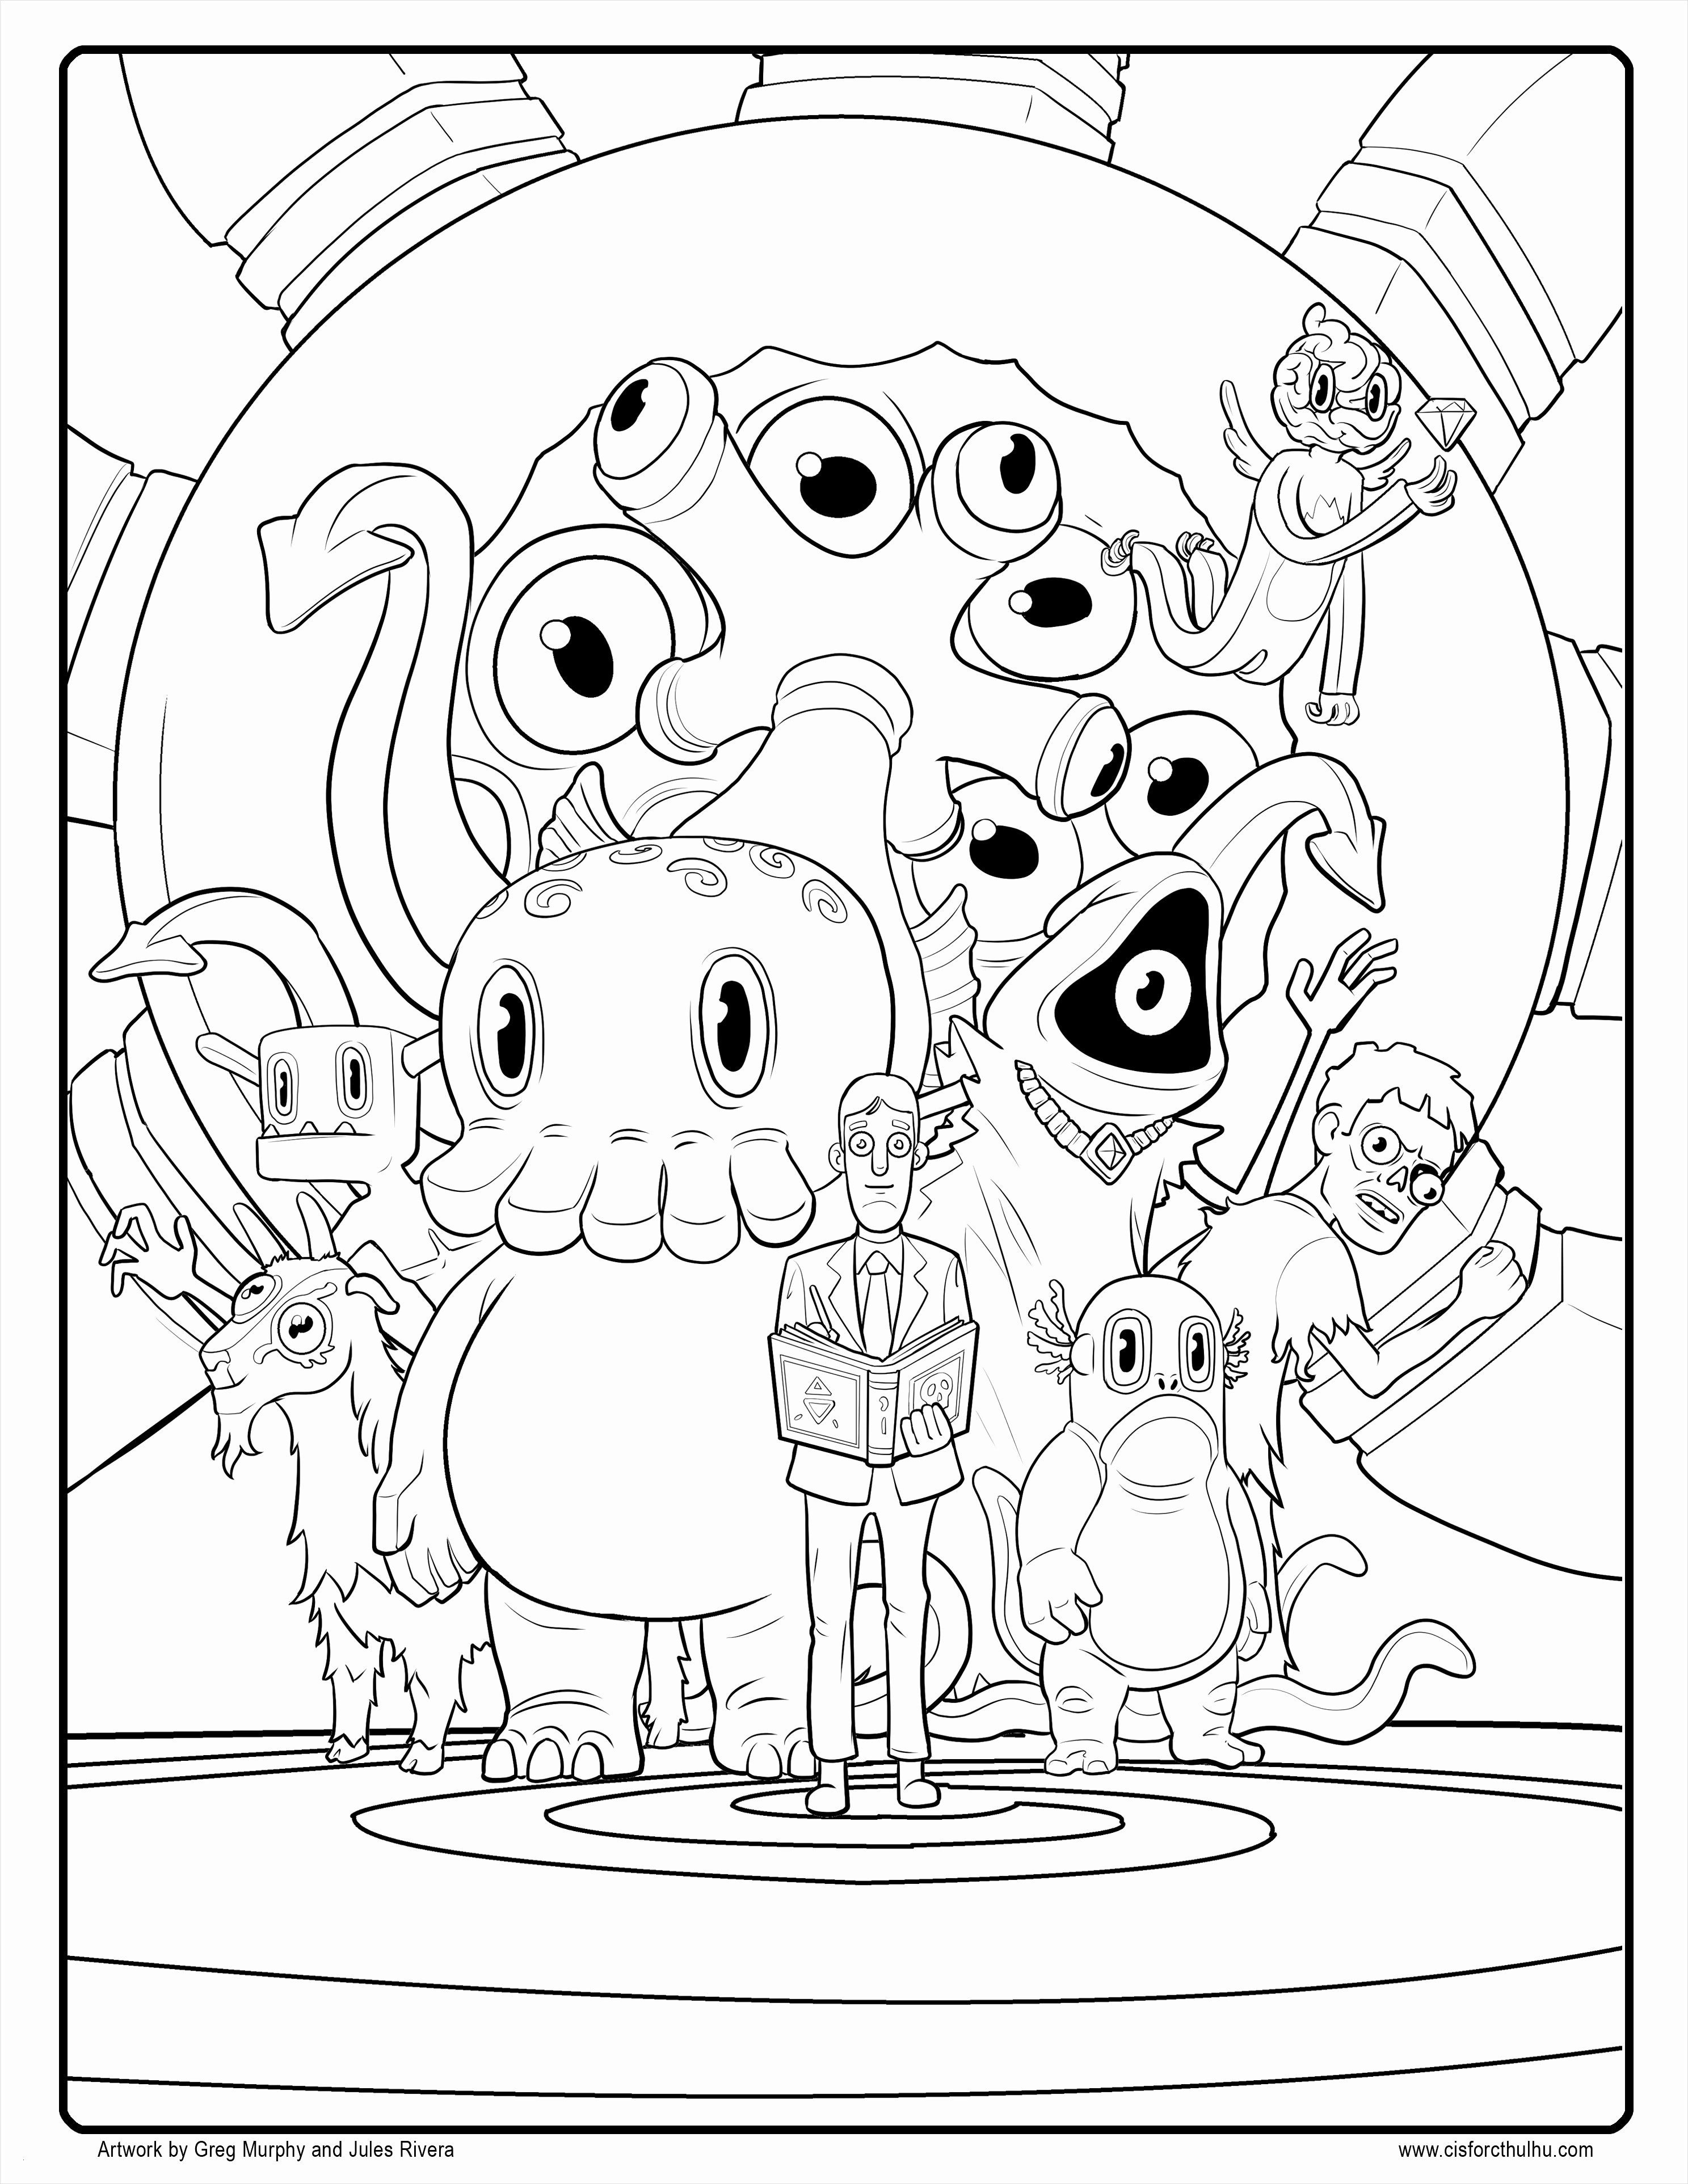 thomas coloring pages Download-Thomas Coloring Page 28 Unique Mystery Coloring Pages Cloud9vegas 10-o